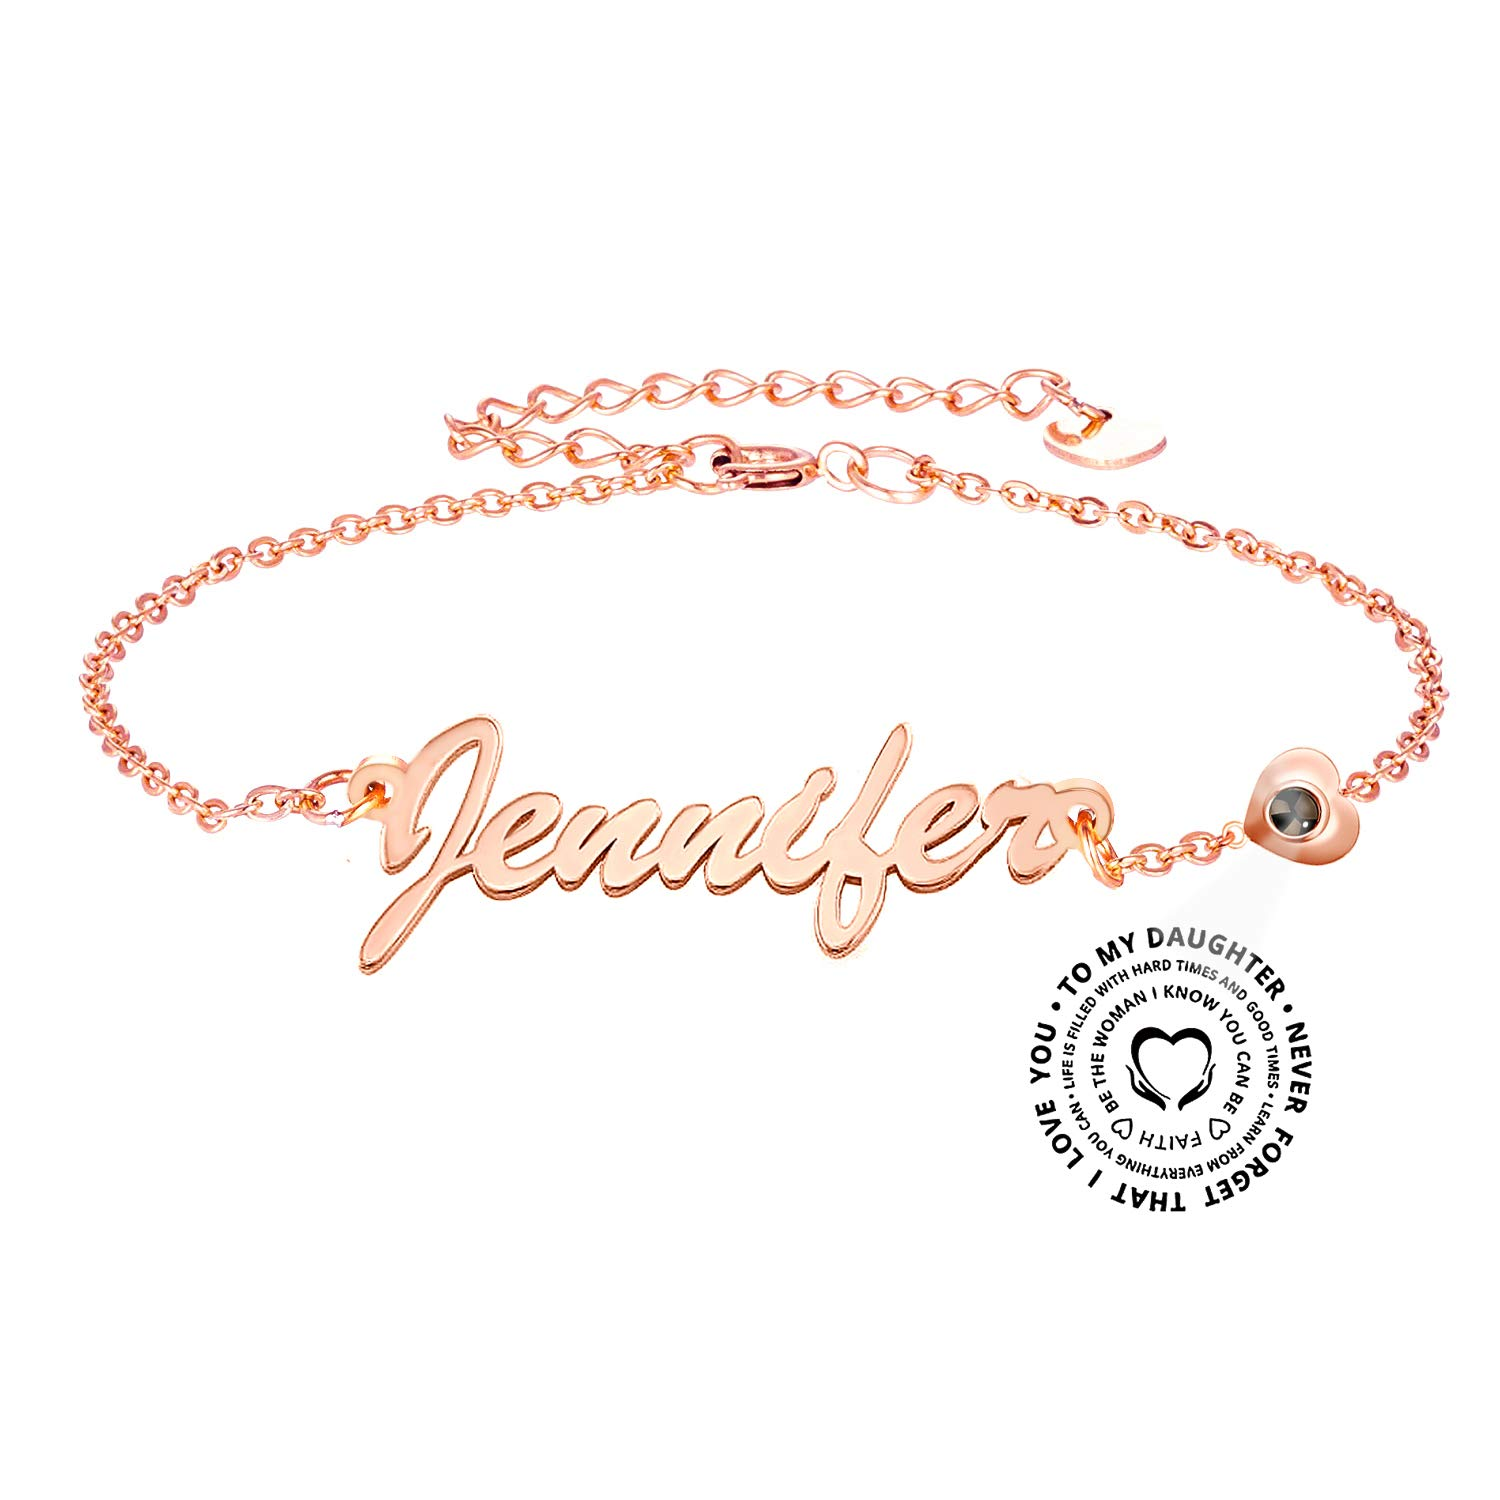 lovefir Personalized Name Necklace by Projection Style Gift for Your Daughter by 925 Sterling Silver